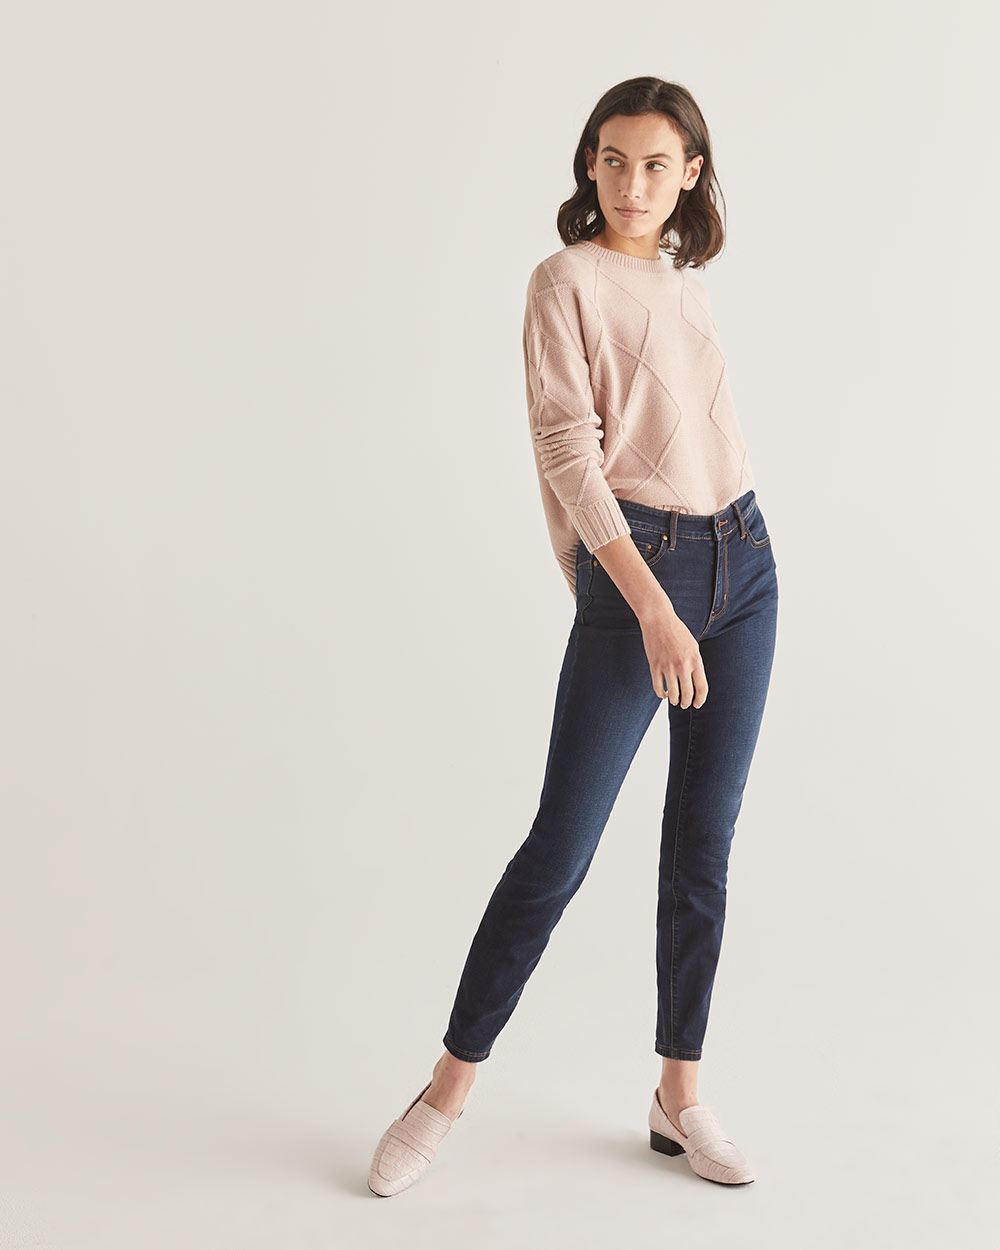 The Sculpting Skinny Jeans